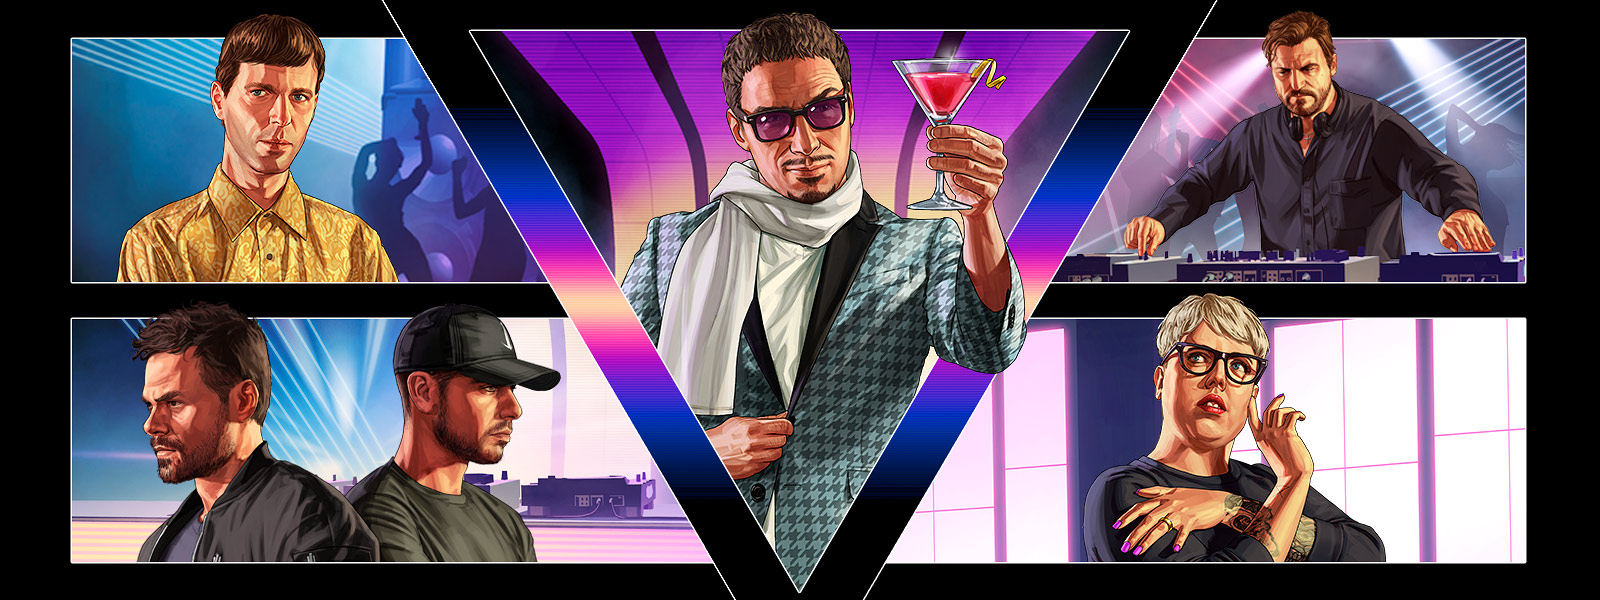 Grand Theft Auto Online After Hours, collage de varios personajes en una discoteca